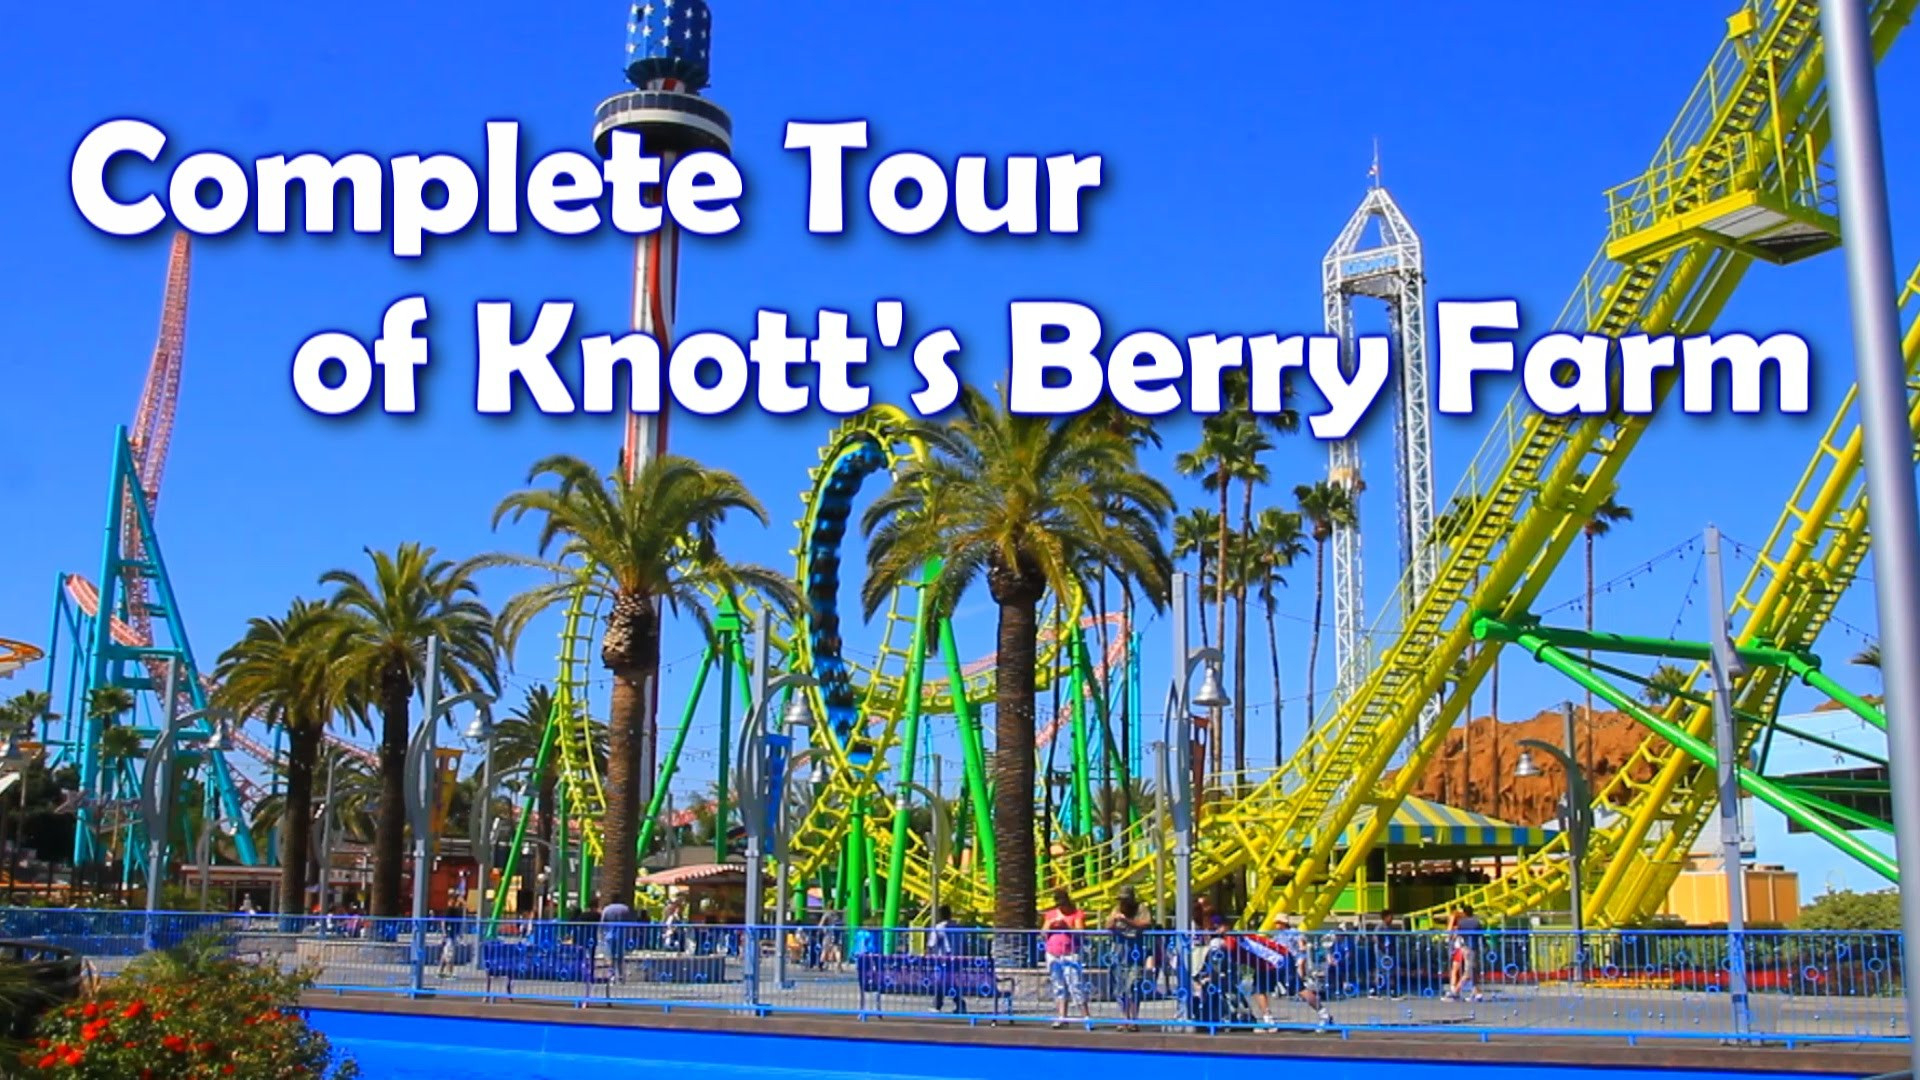 Knotts Berry Farm California Map New Map To Knotts Berry Farm 4K - Knotts Berry Farm Map California